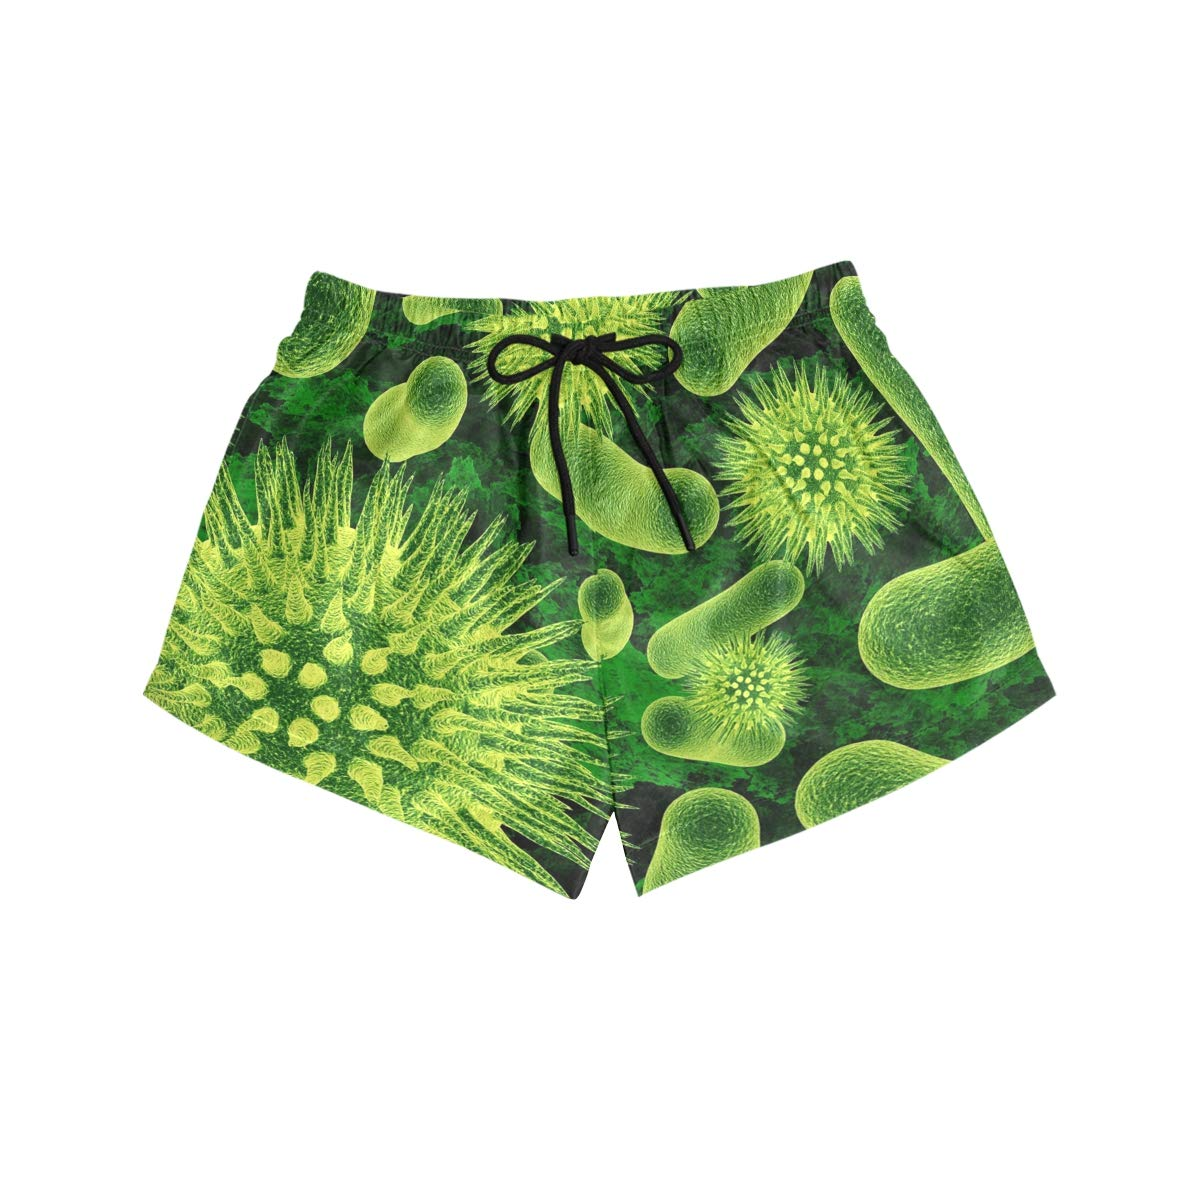 Green Cellular Virus Colorful Novelty Womens Quick Dry Swim Trunks Swimming Shorts with Mesh Liner